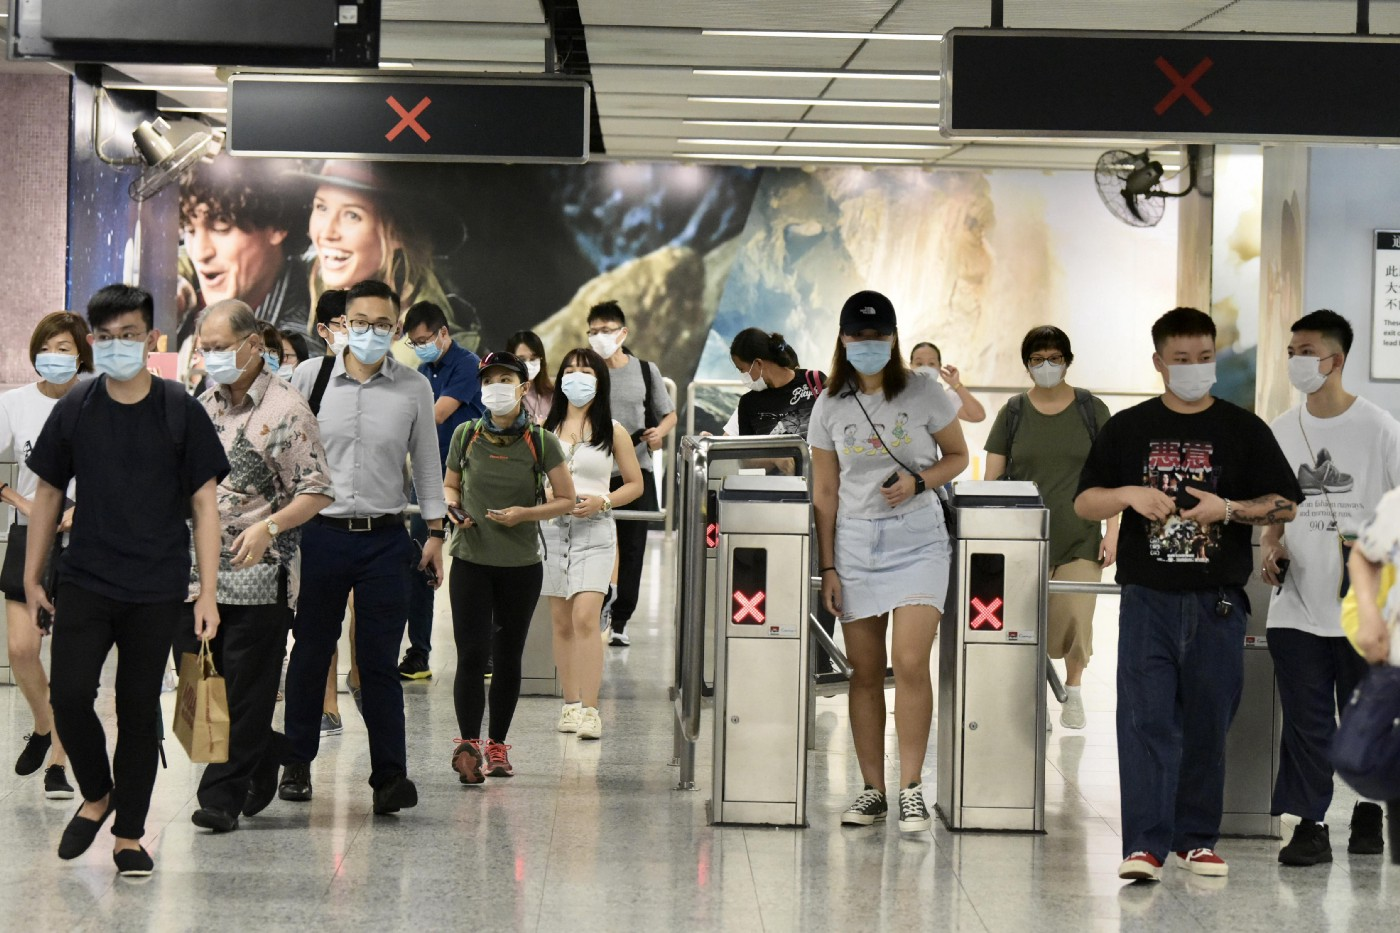 People wearing masks go through ticket barrier at the railway station in Hong Kong.